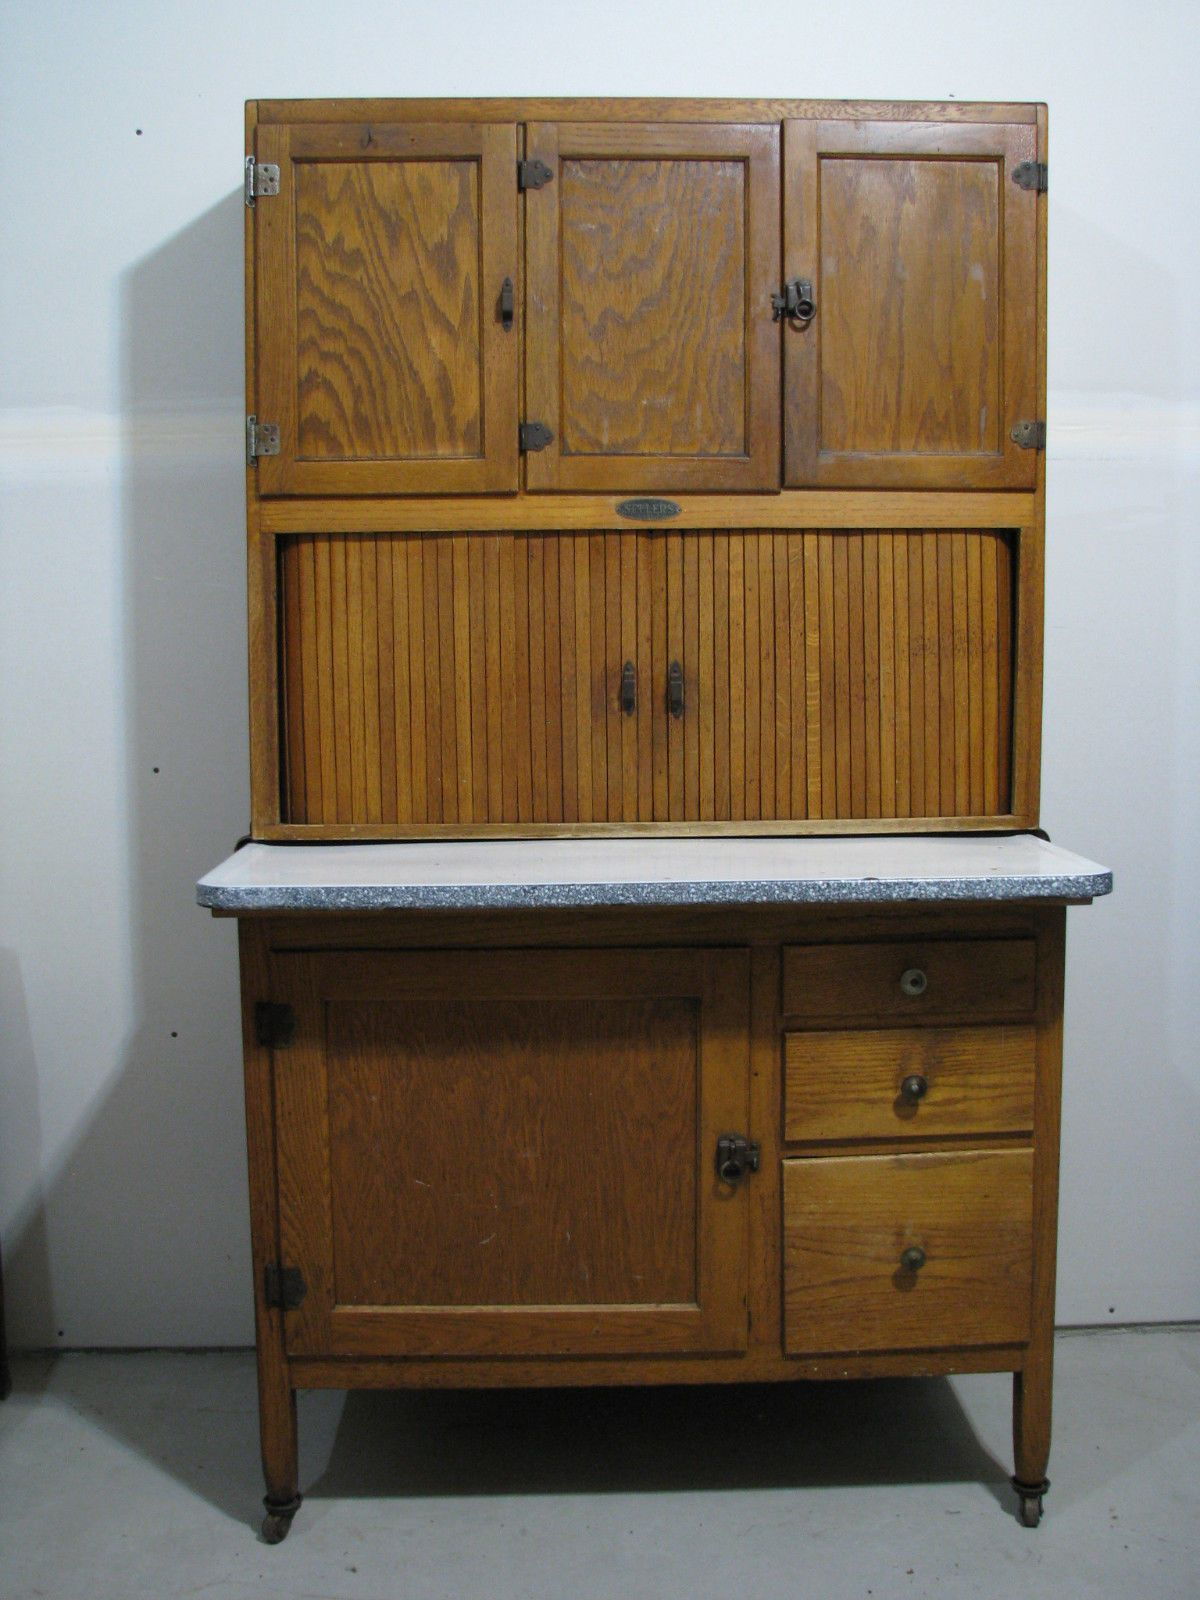 Ebay Kitchen Cabinets >> Details About Vintage Sellers Hoosier Kitchen Cabinet Early